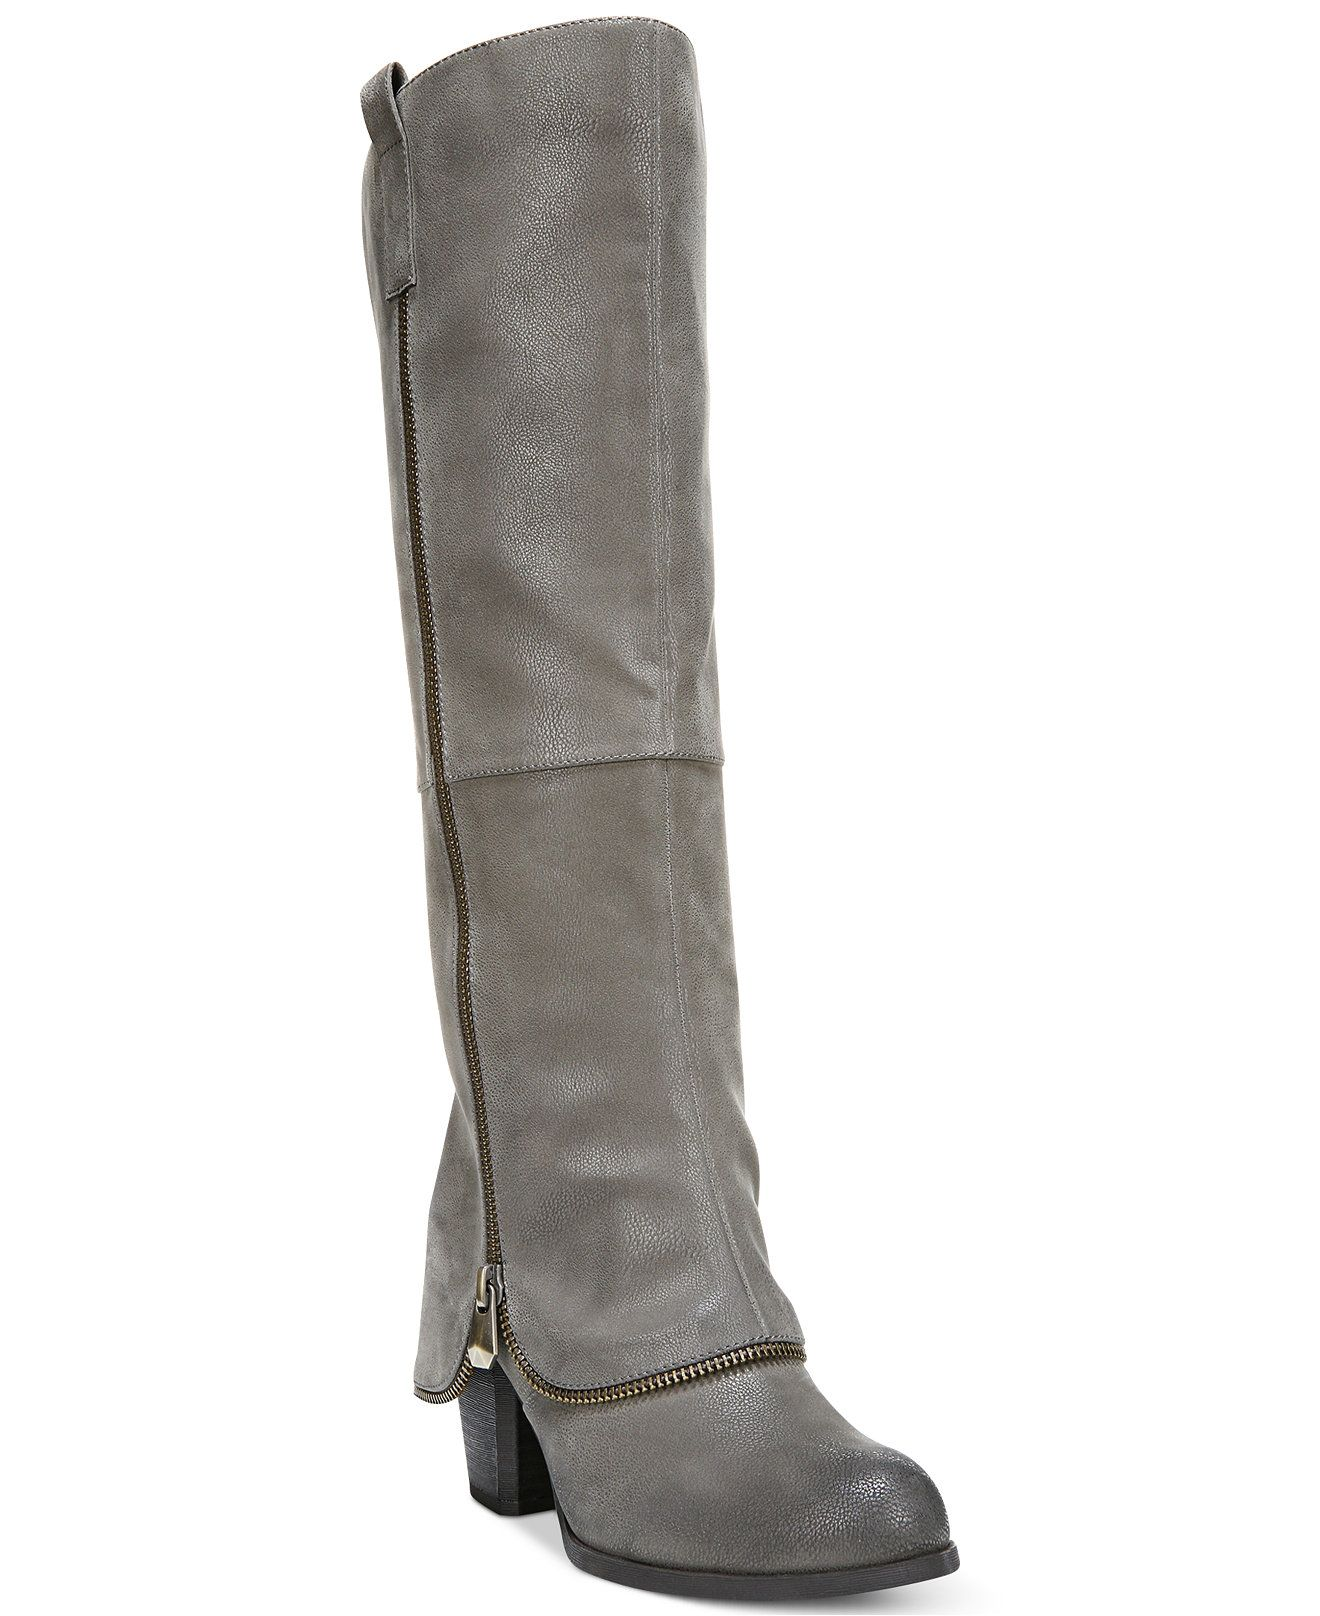 Fergalicious Tune Up Tall Shaft Cuffed Boots - Boots - Shoes - Macy's